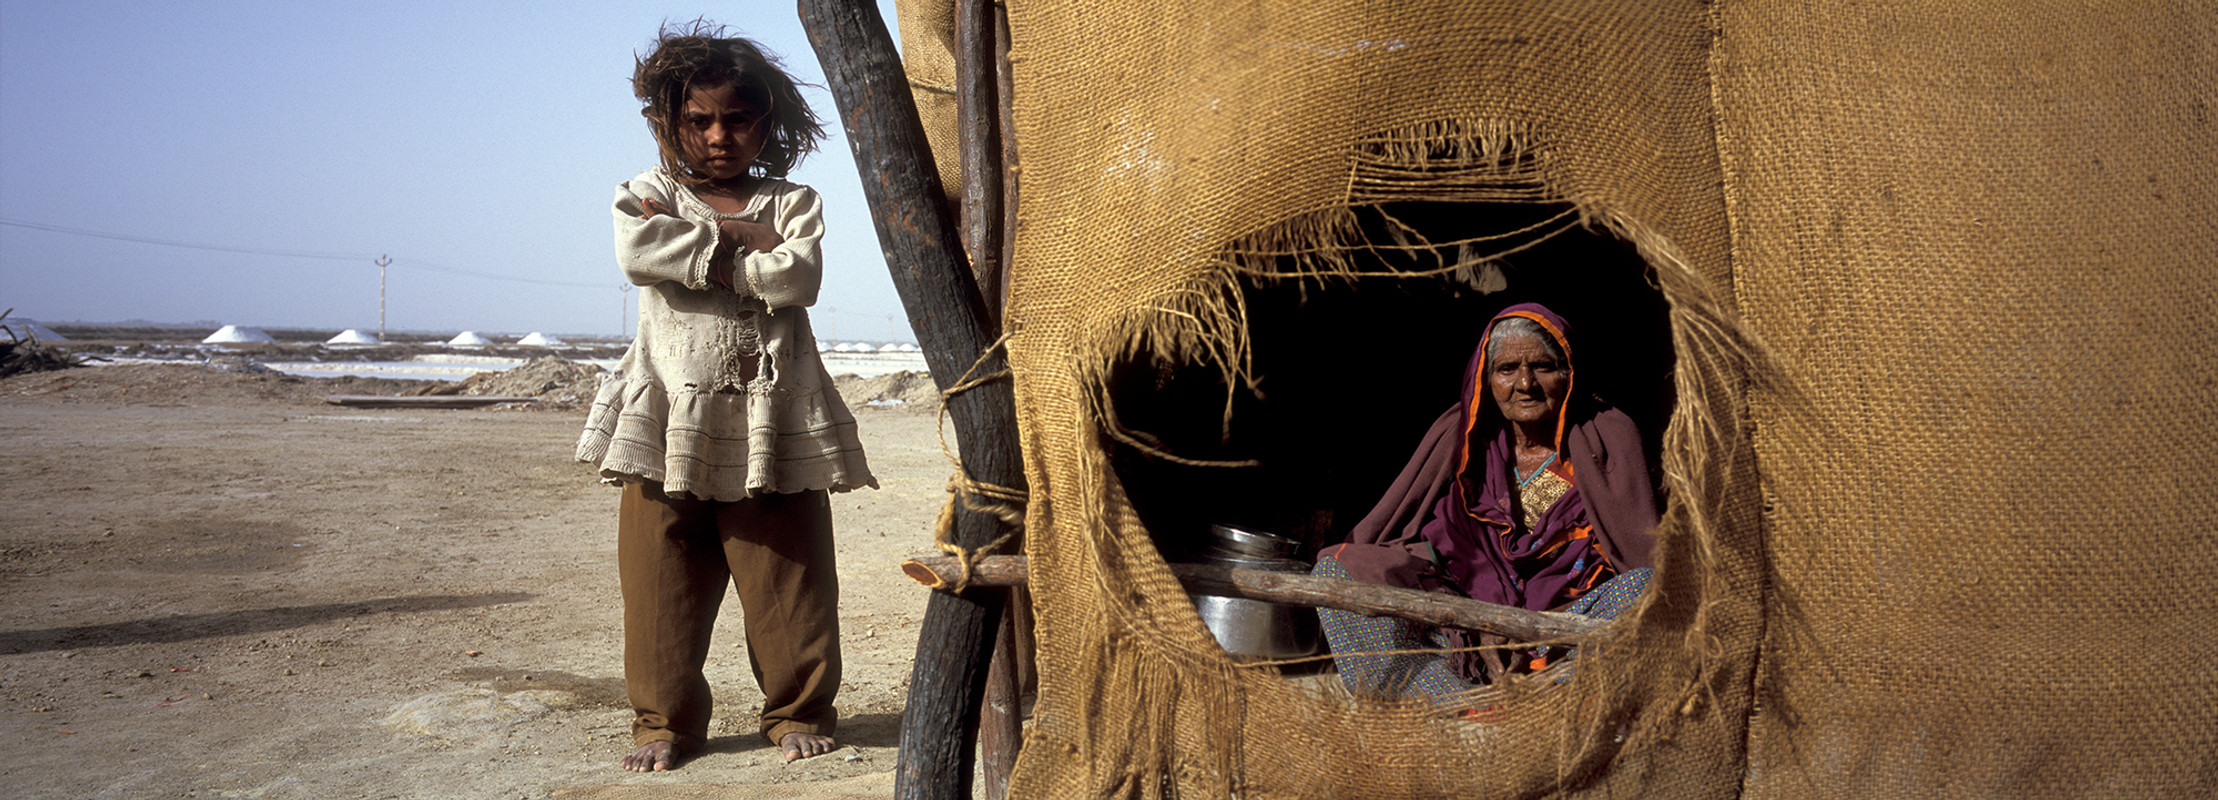 Anjar, Gujarat, 2005: A migrant worker's family working in salt-ans at their dwelling at the work site.